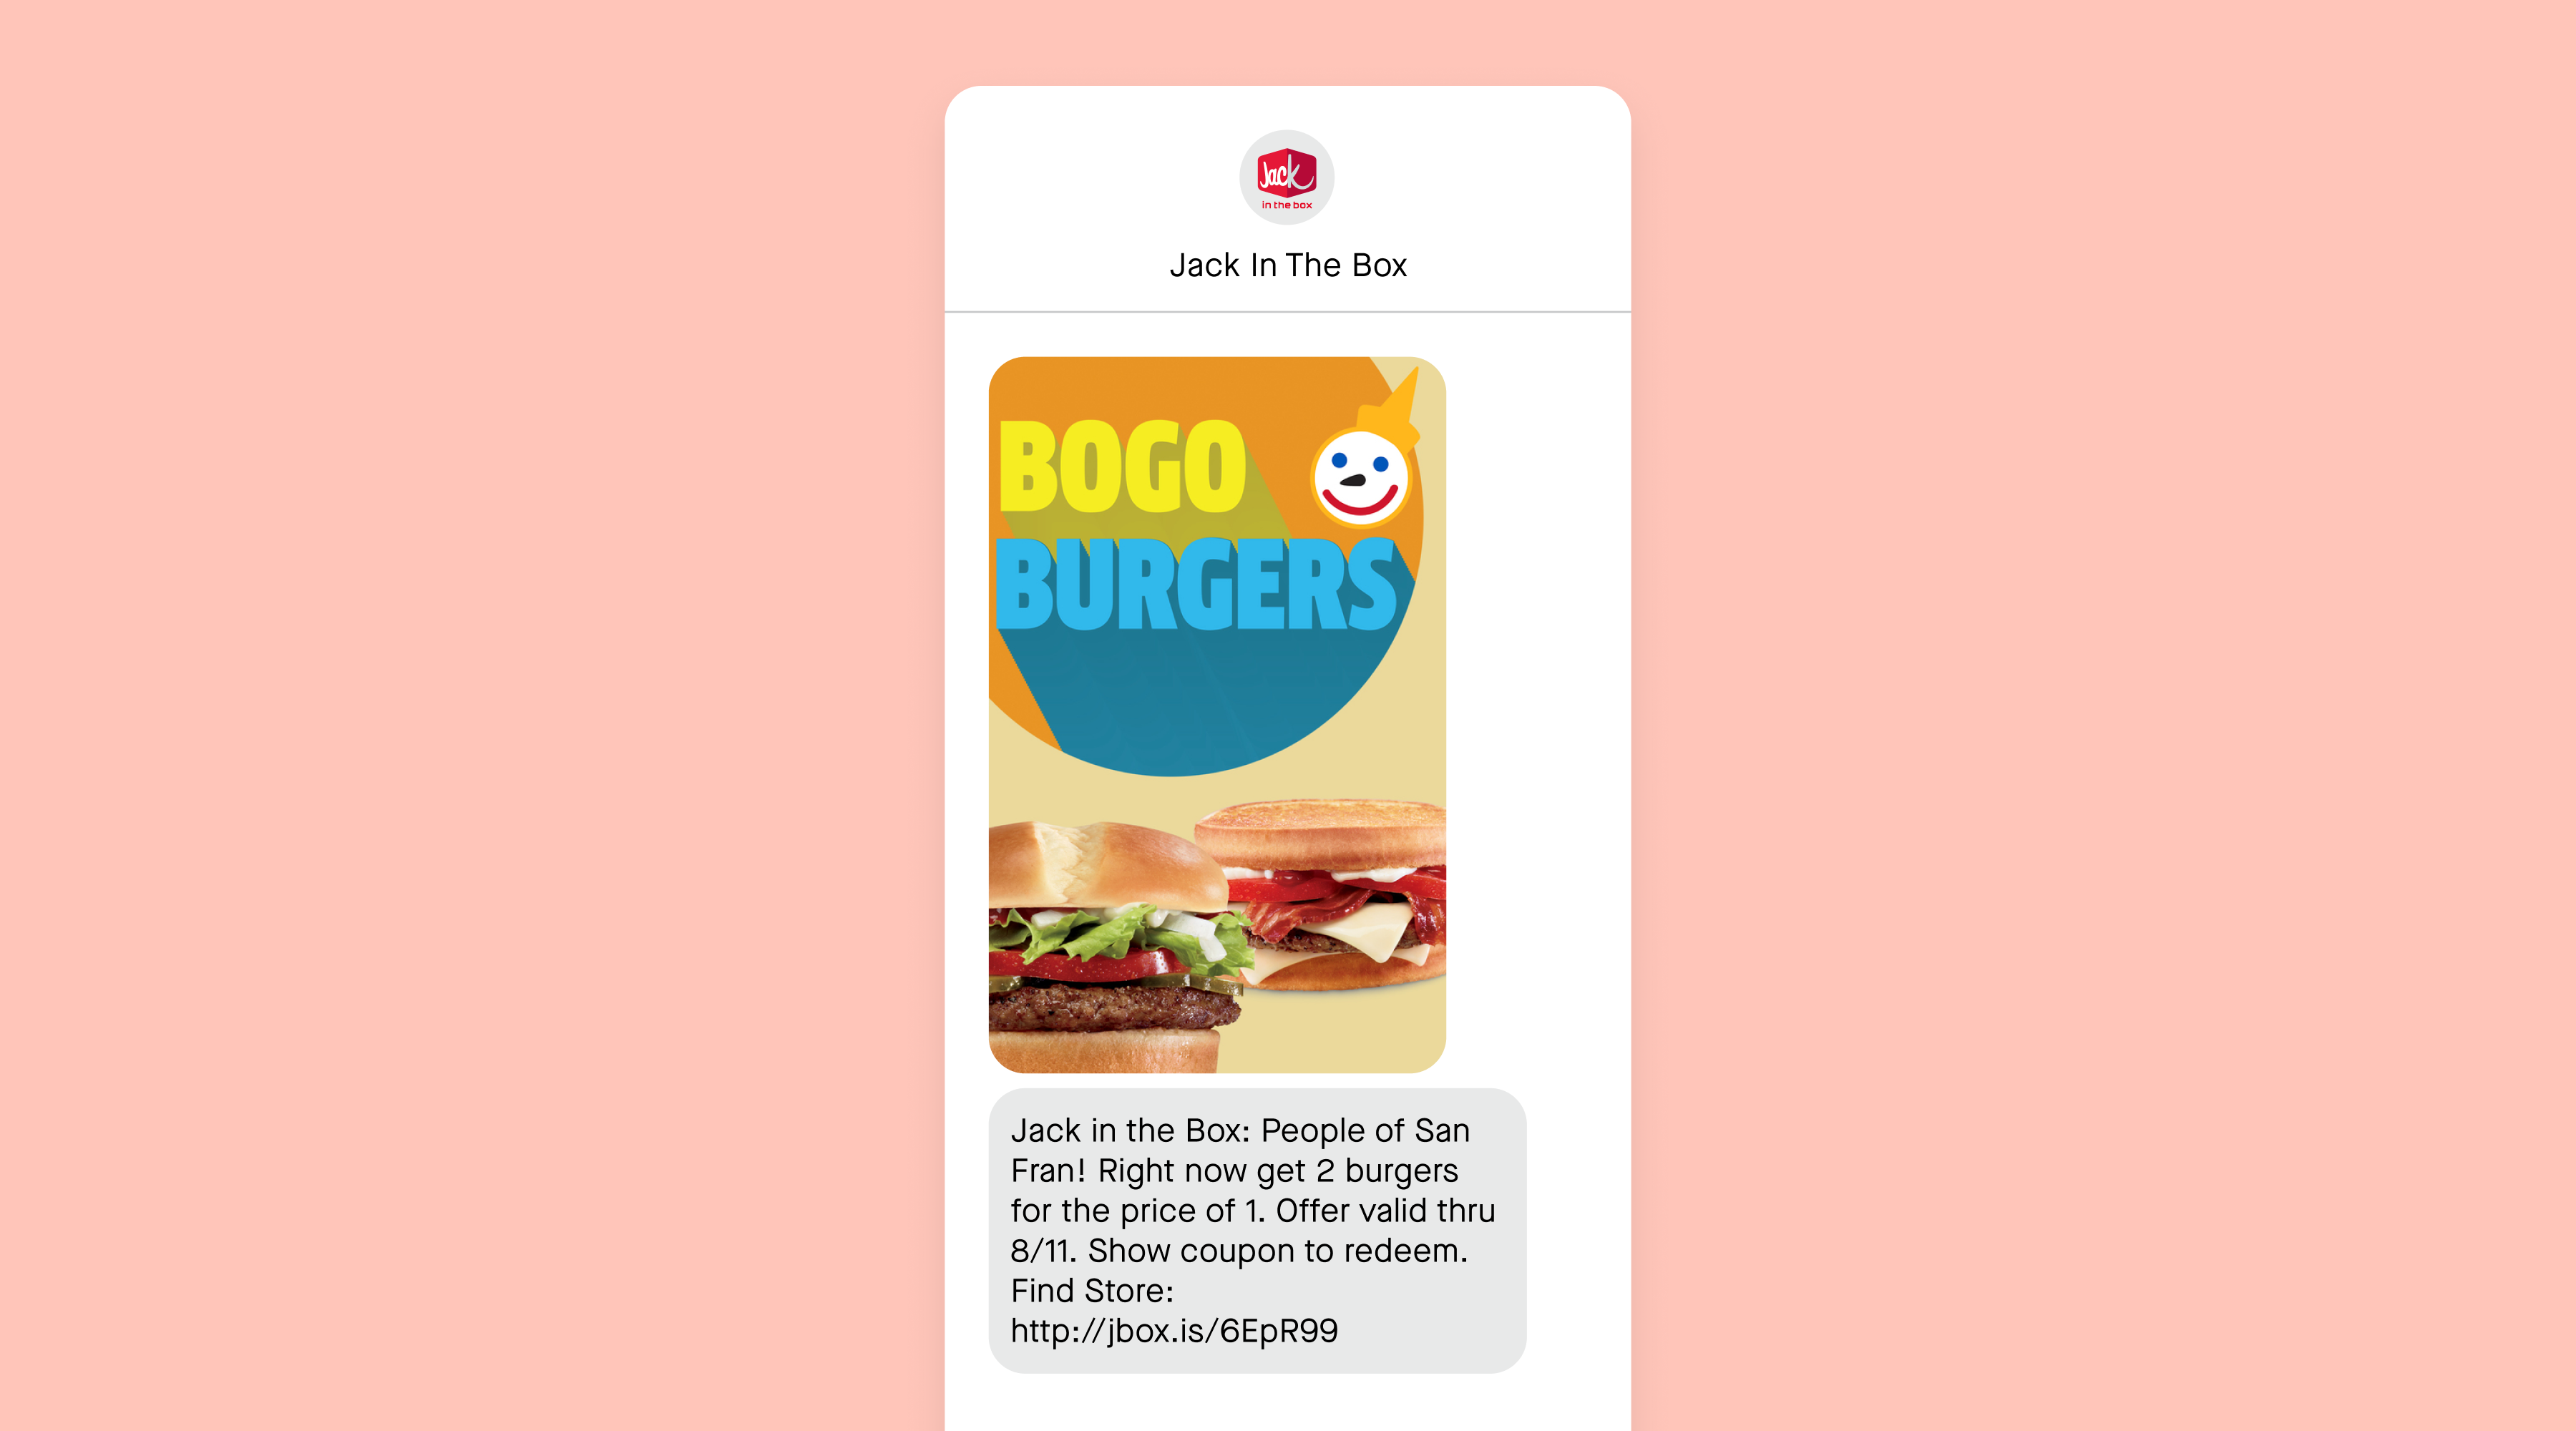 jack in the box BOGo text